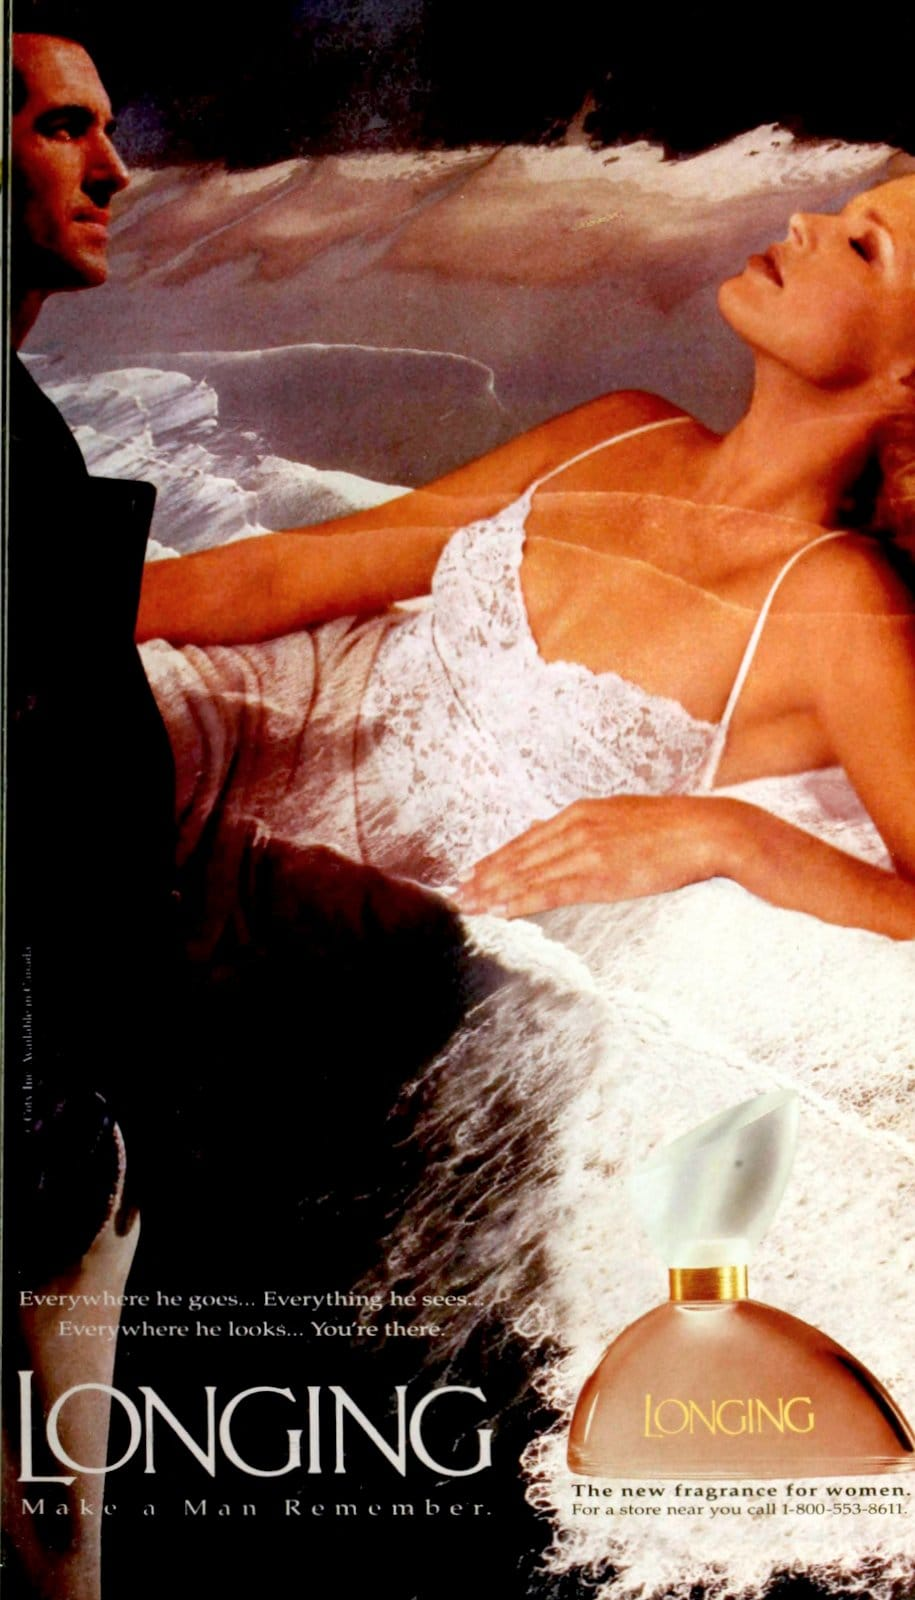 Popular vintage perfumes from the '90s - Longing from Coty (1994) at ClickAmericana.com